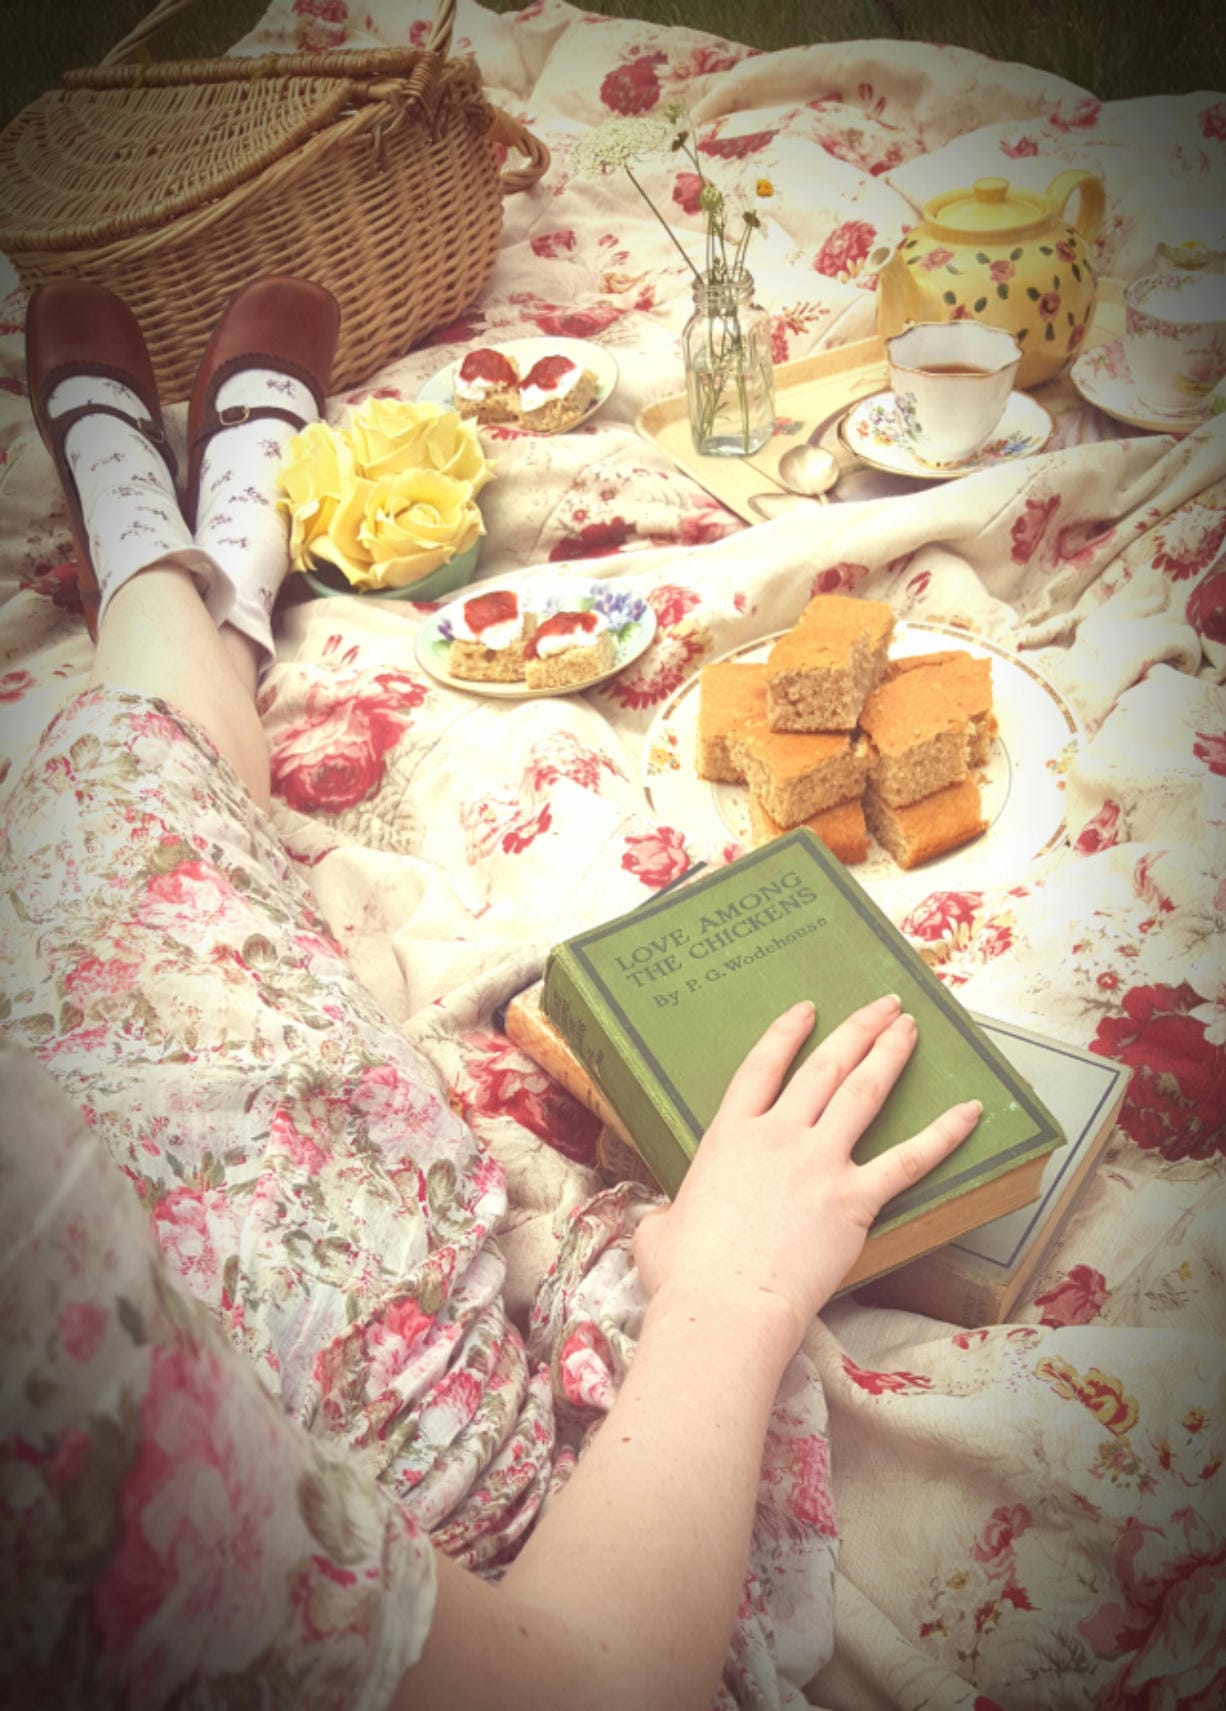 The cottagecore aesthetic is full of flowers, picnics with tea and jam, flowing dresses and relaxed pleasures.